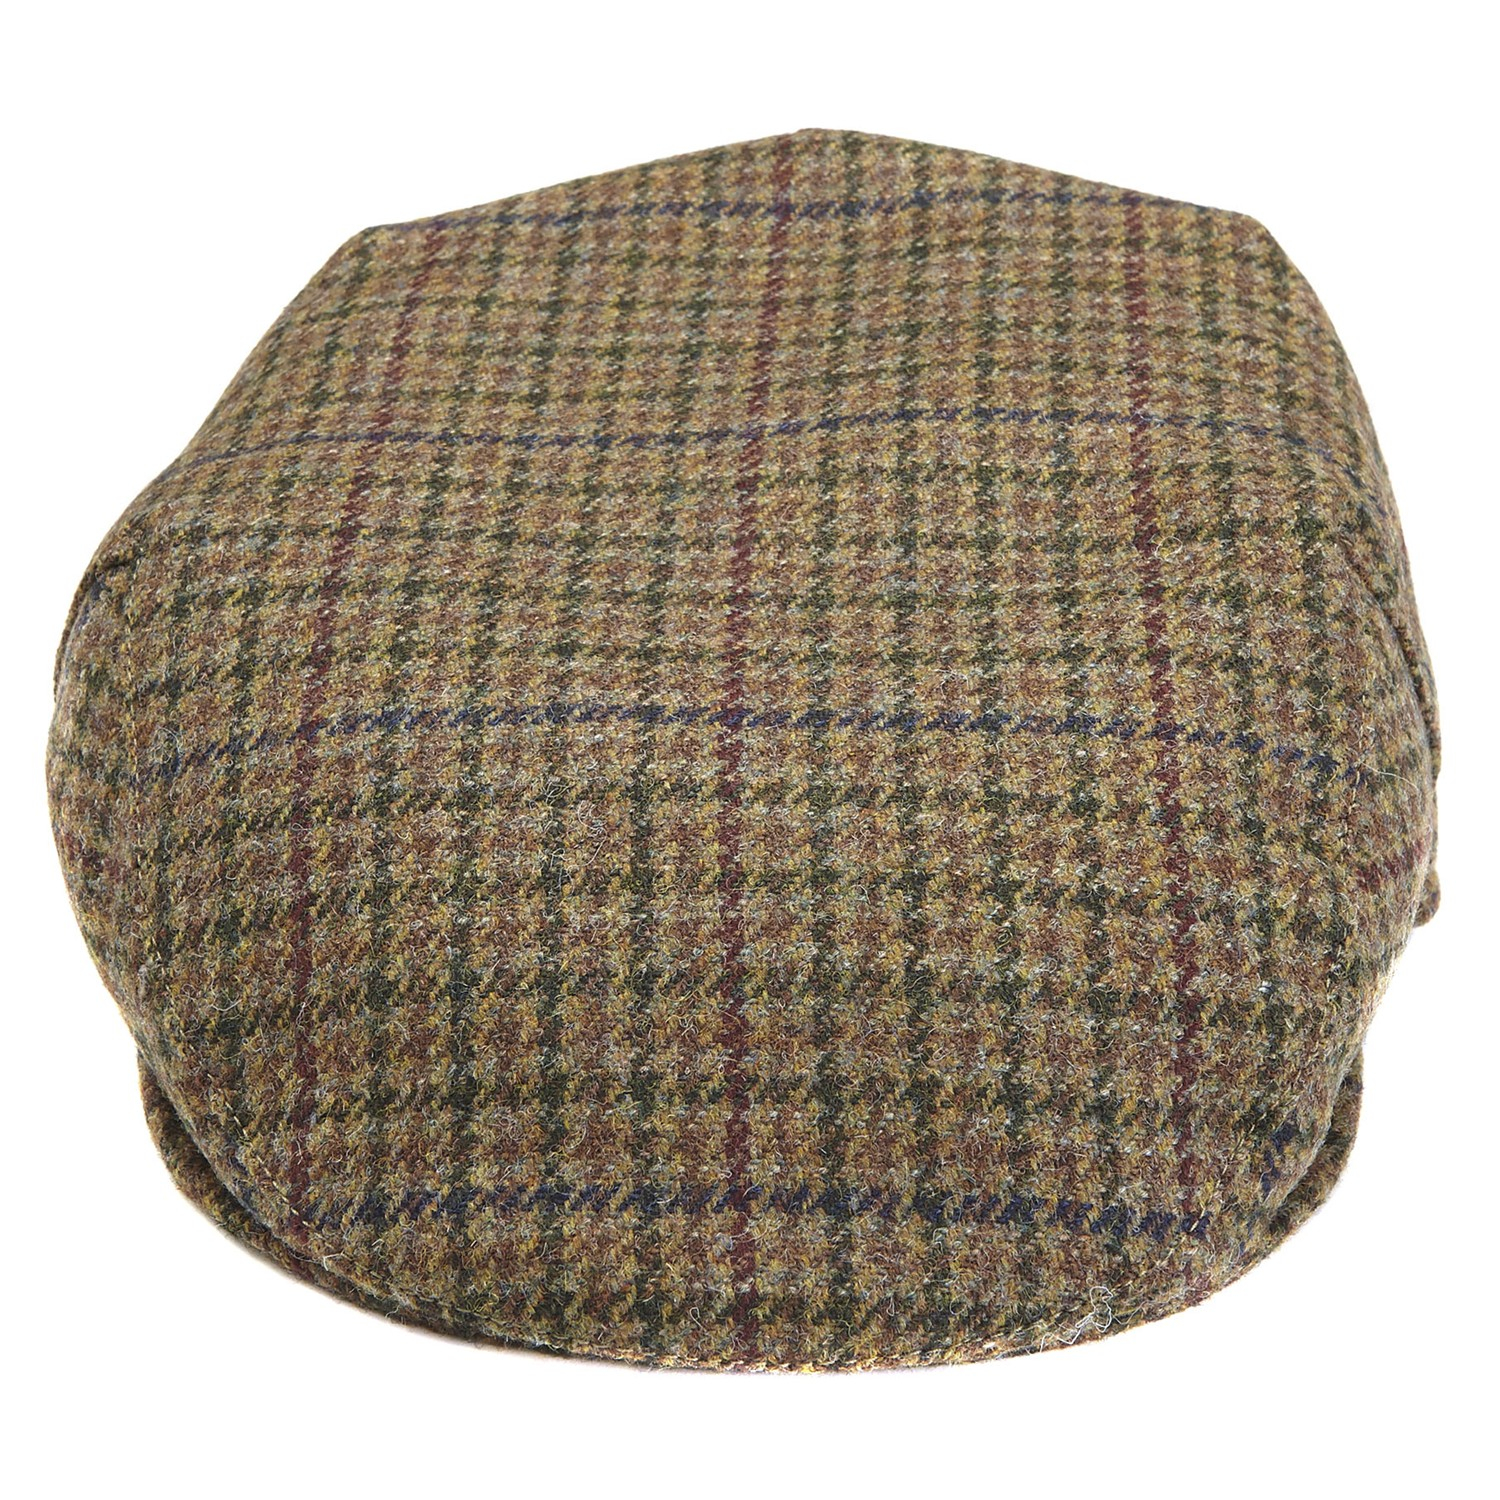 198934960ce Barbour Wool Crieff Check Flat Cap in Green for Men - Lyst